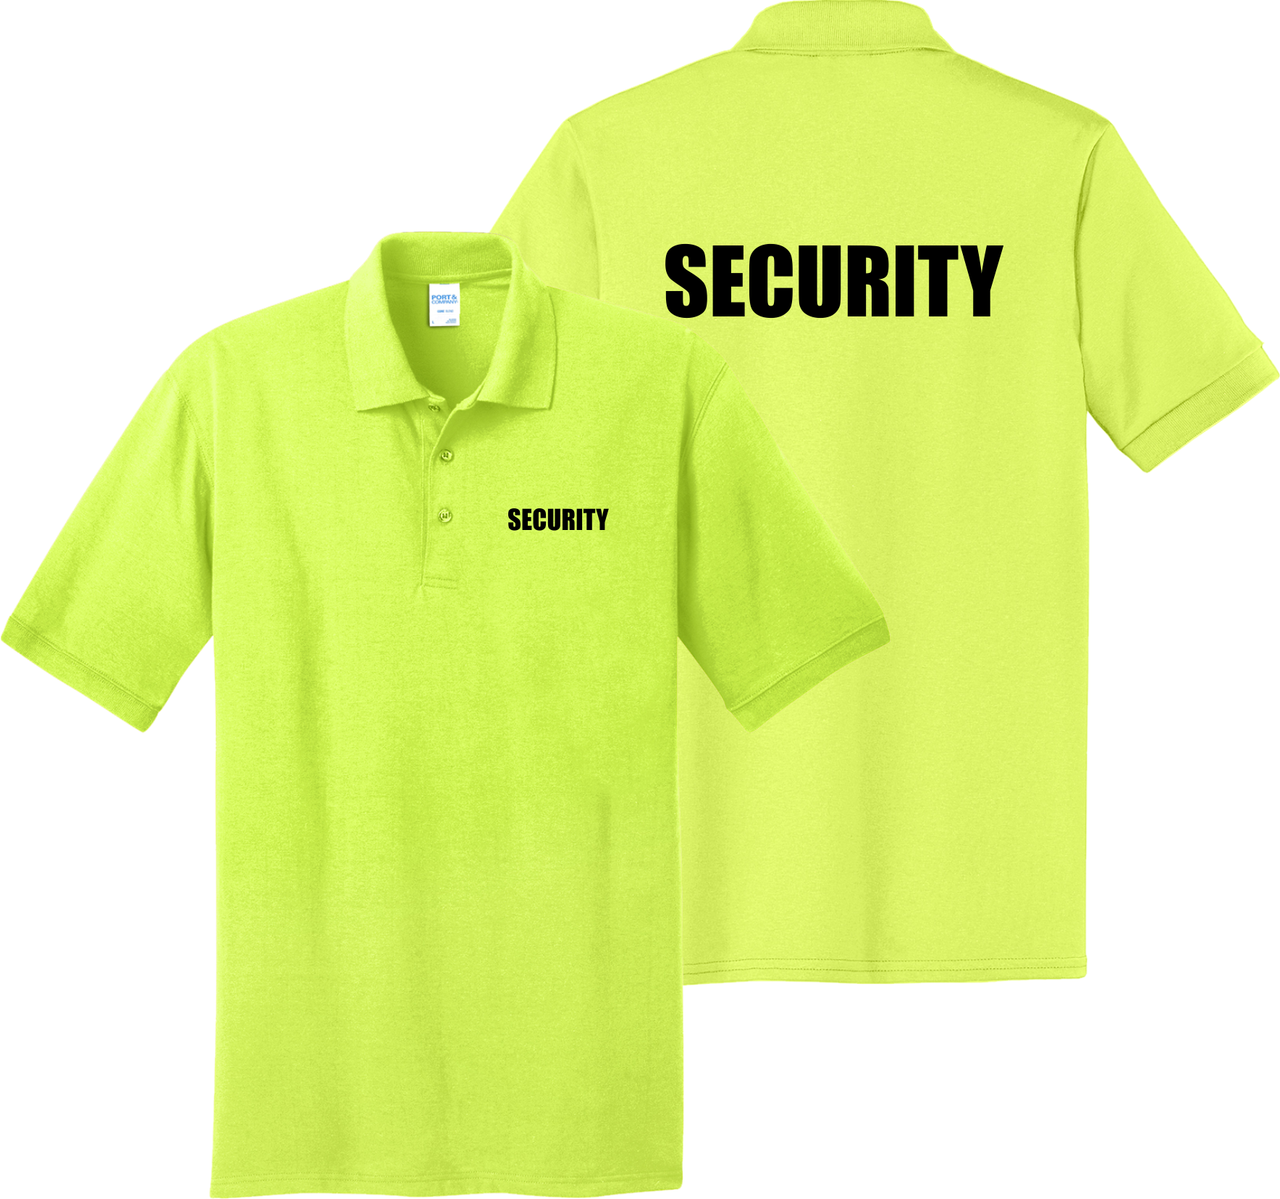 Safety Green Security Polo.  Make your Security Officer stand out among the crowd in the bright Safety Green Polo Shirt.